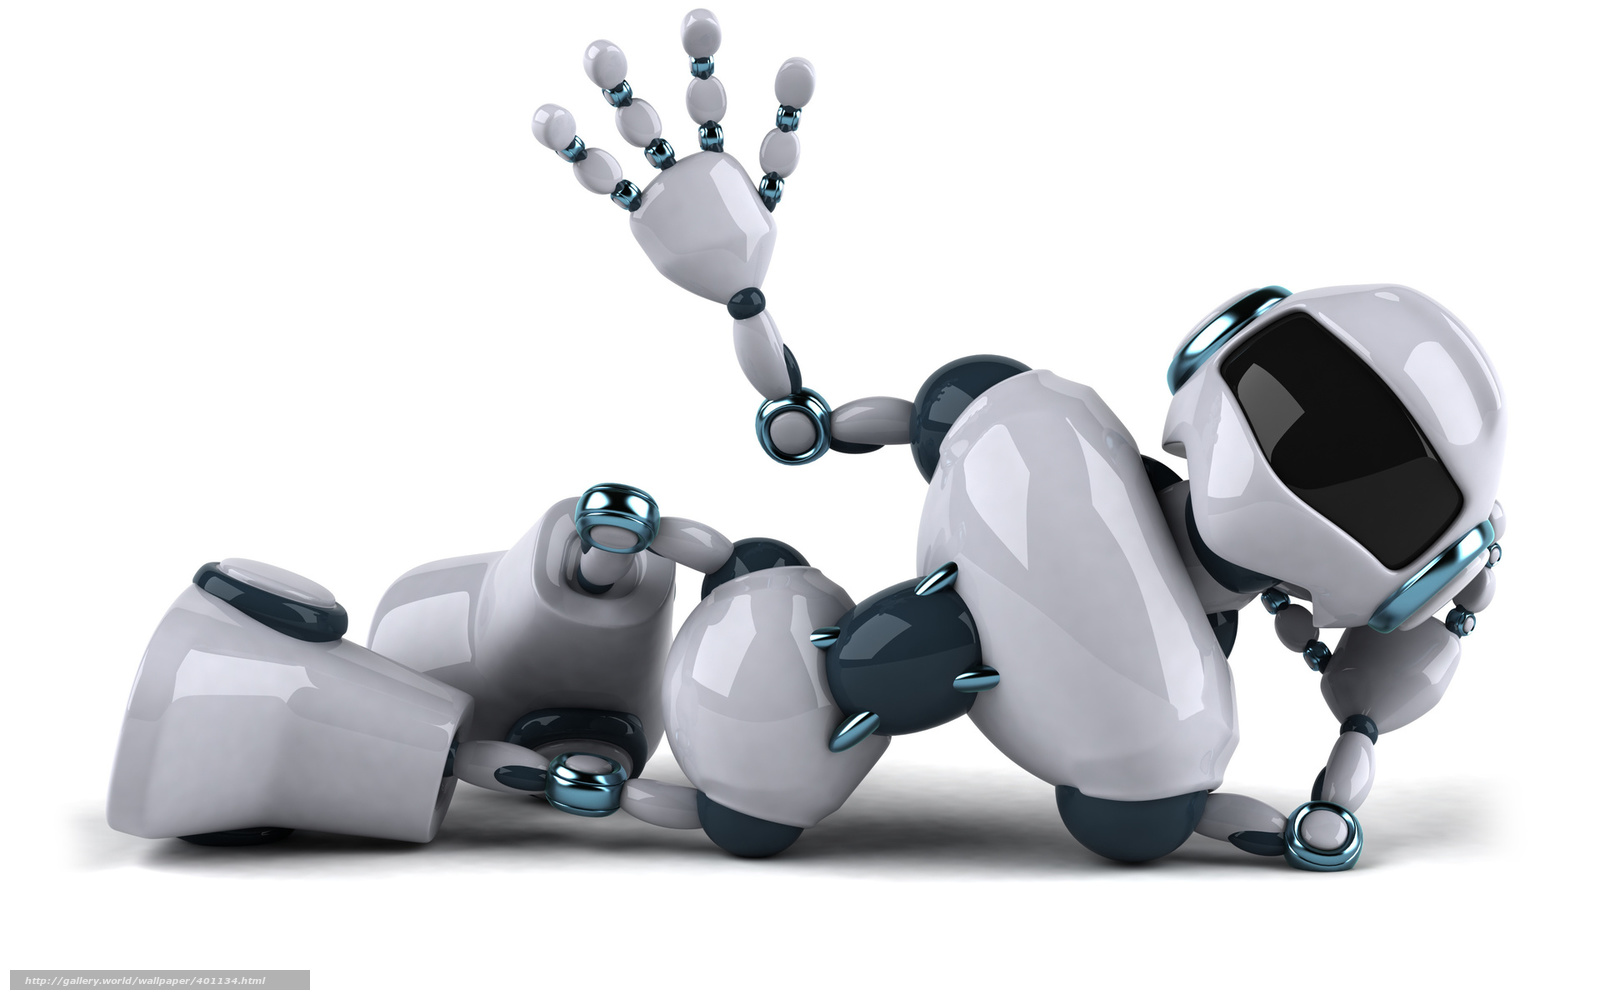 Wallpaper Alienware y Robots Blancos en HD